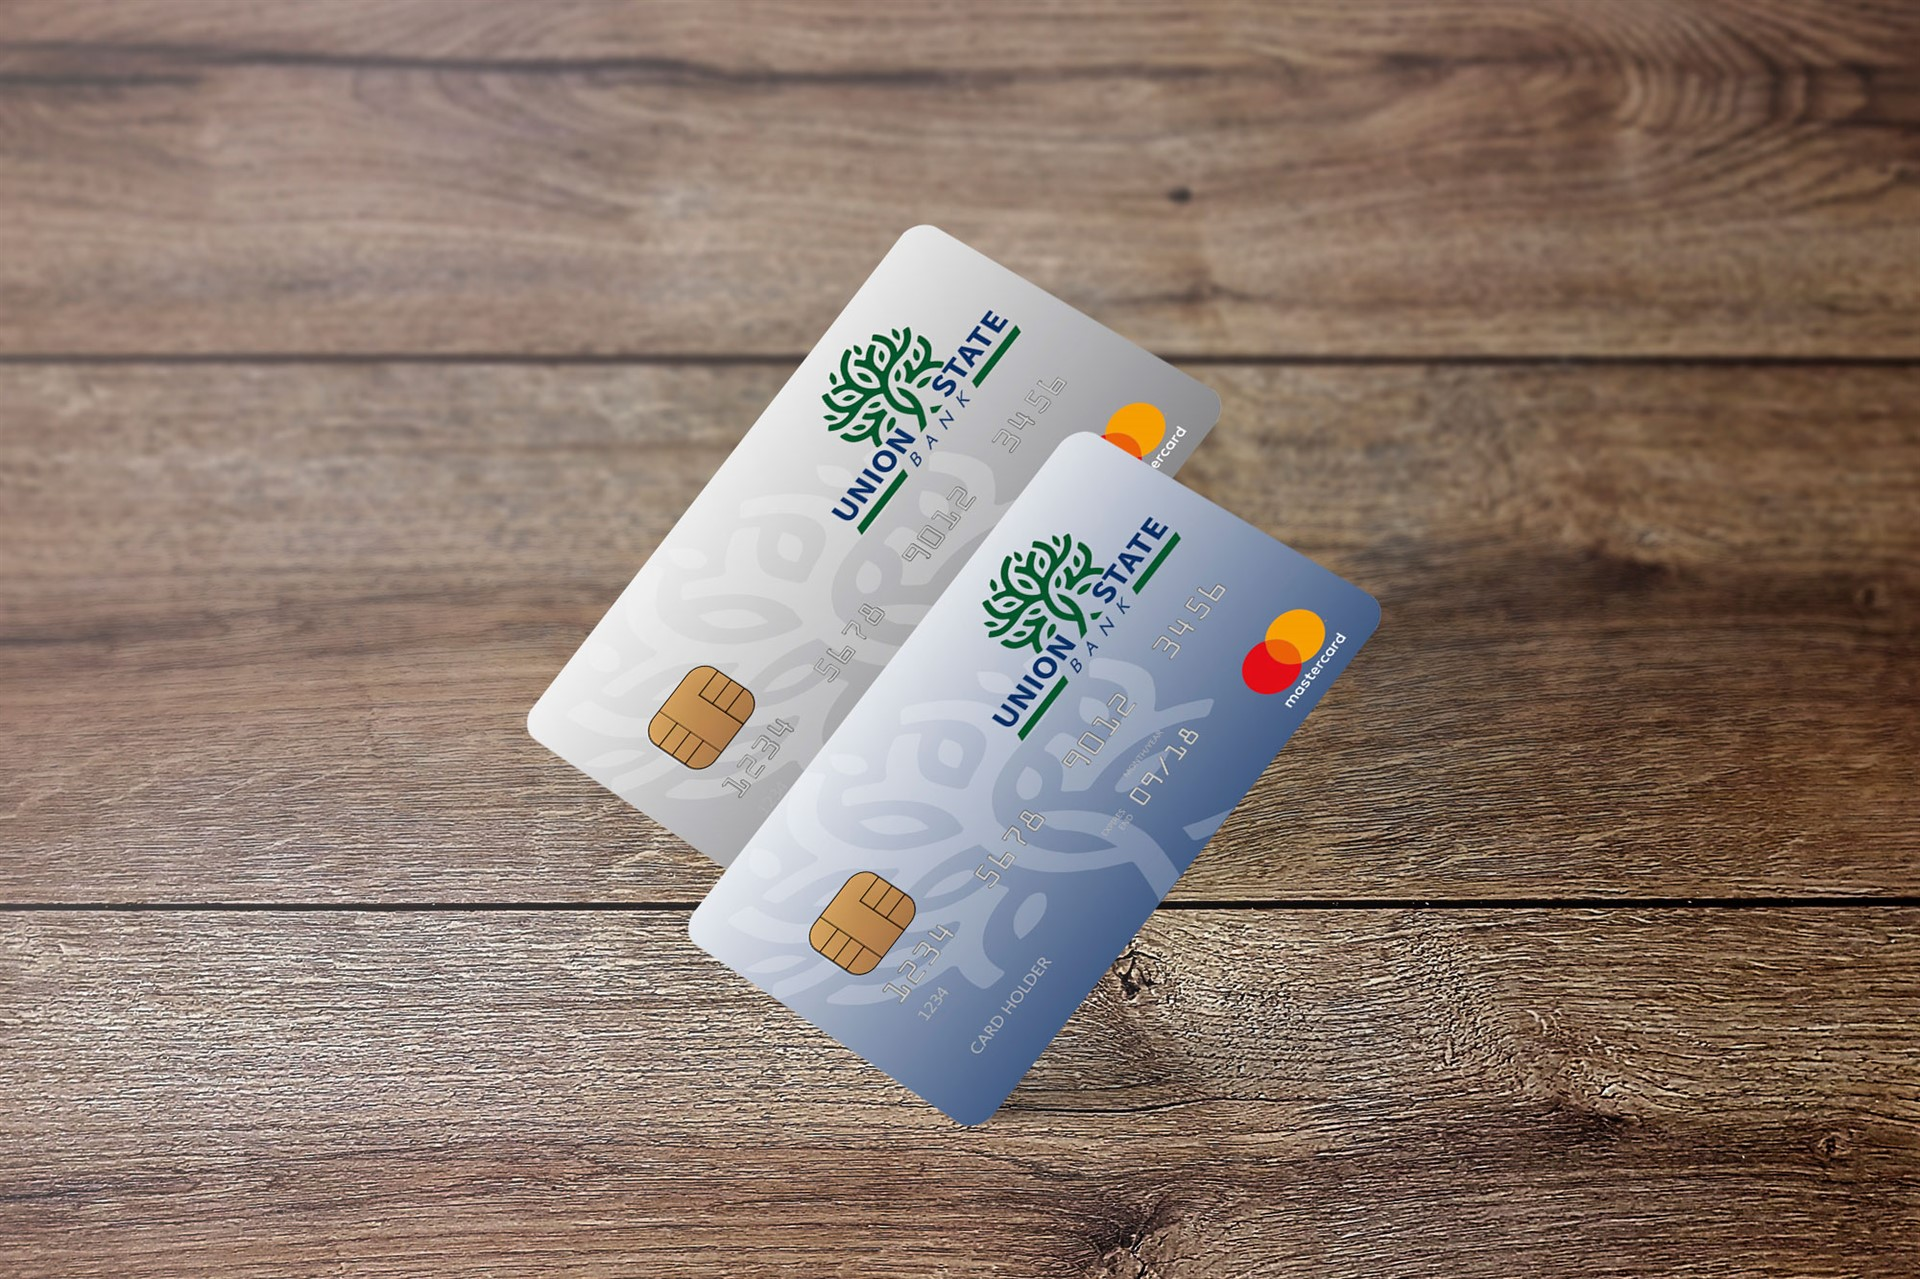 Chip-enabled debit cards are coming your way!